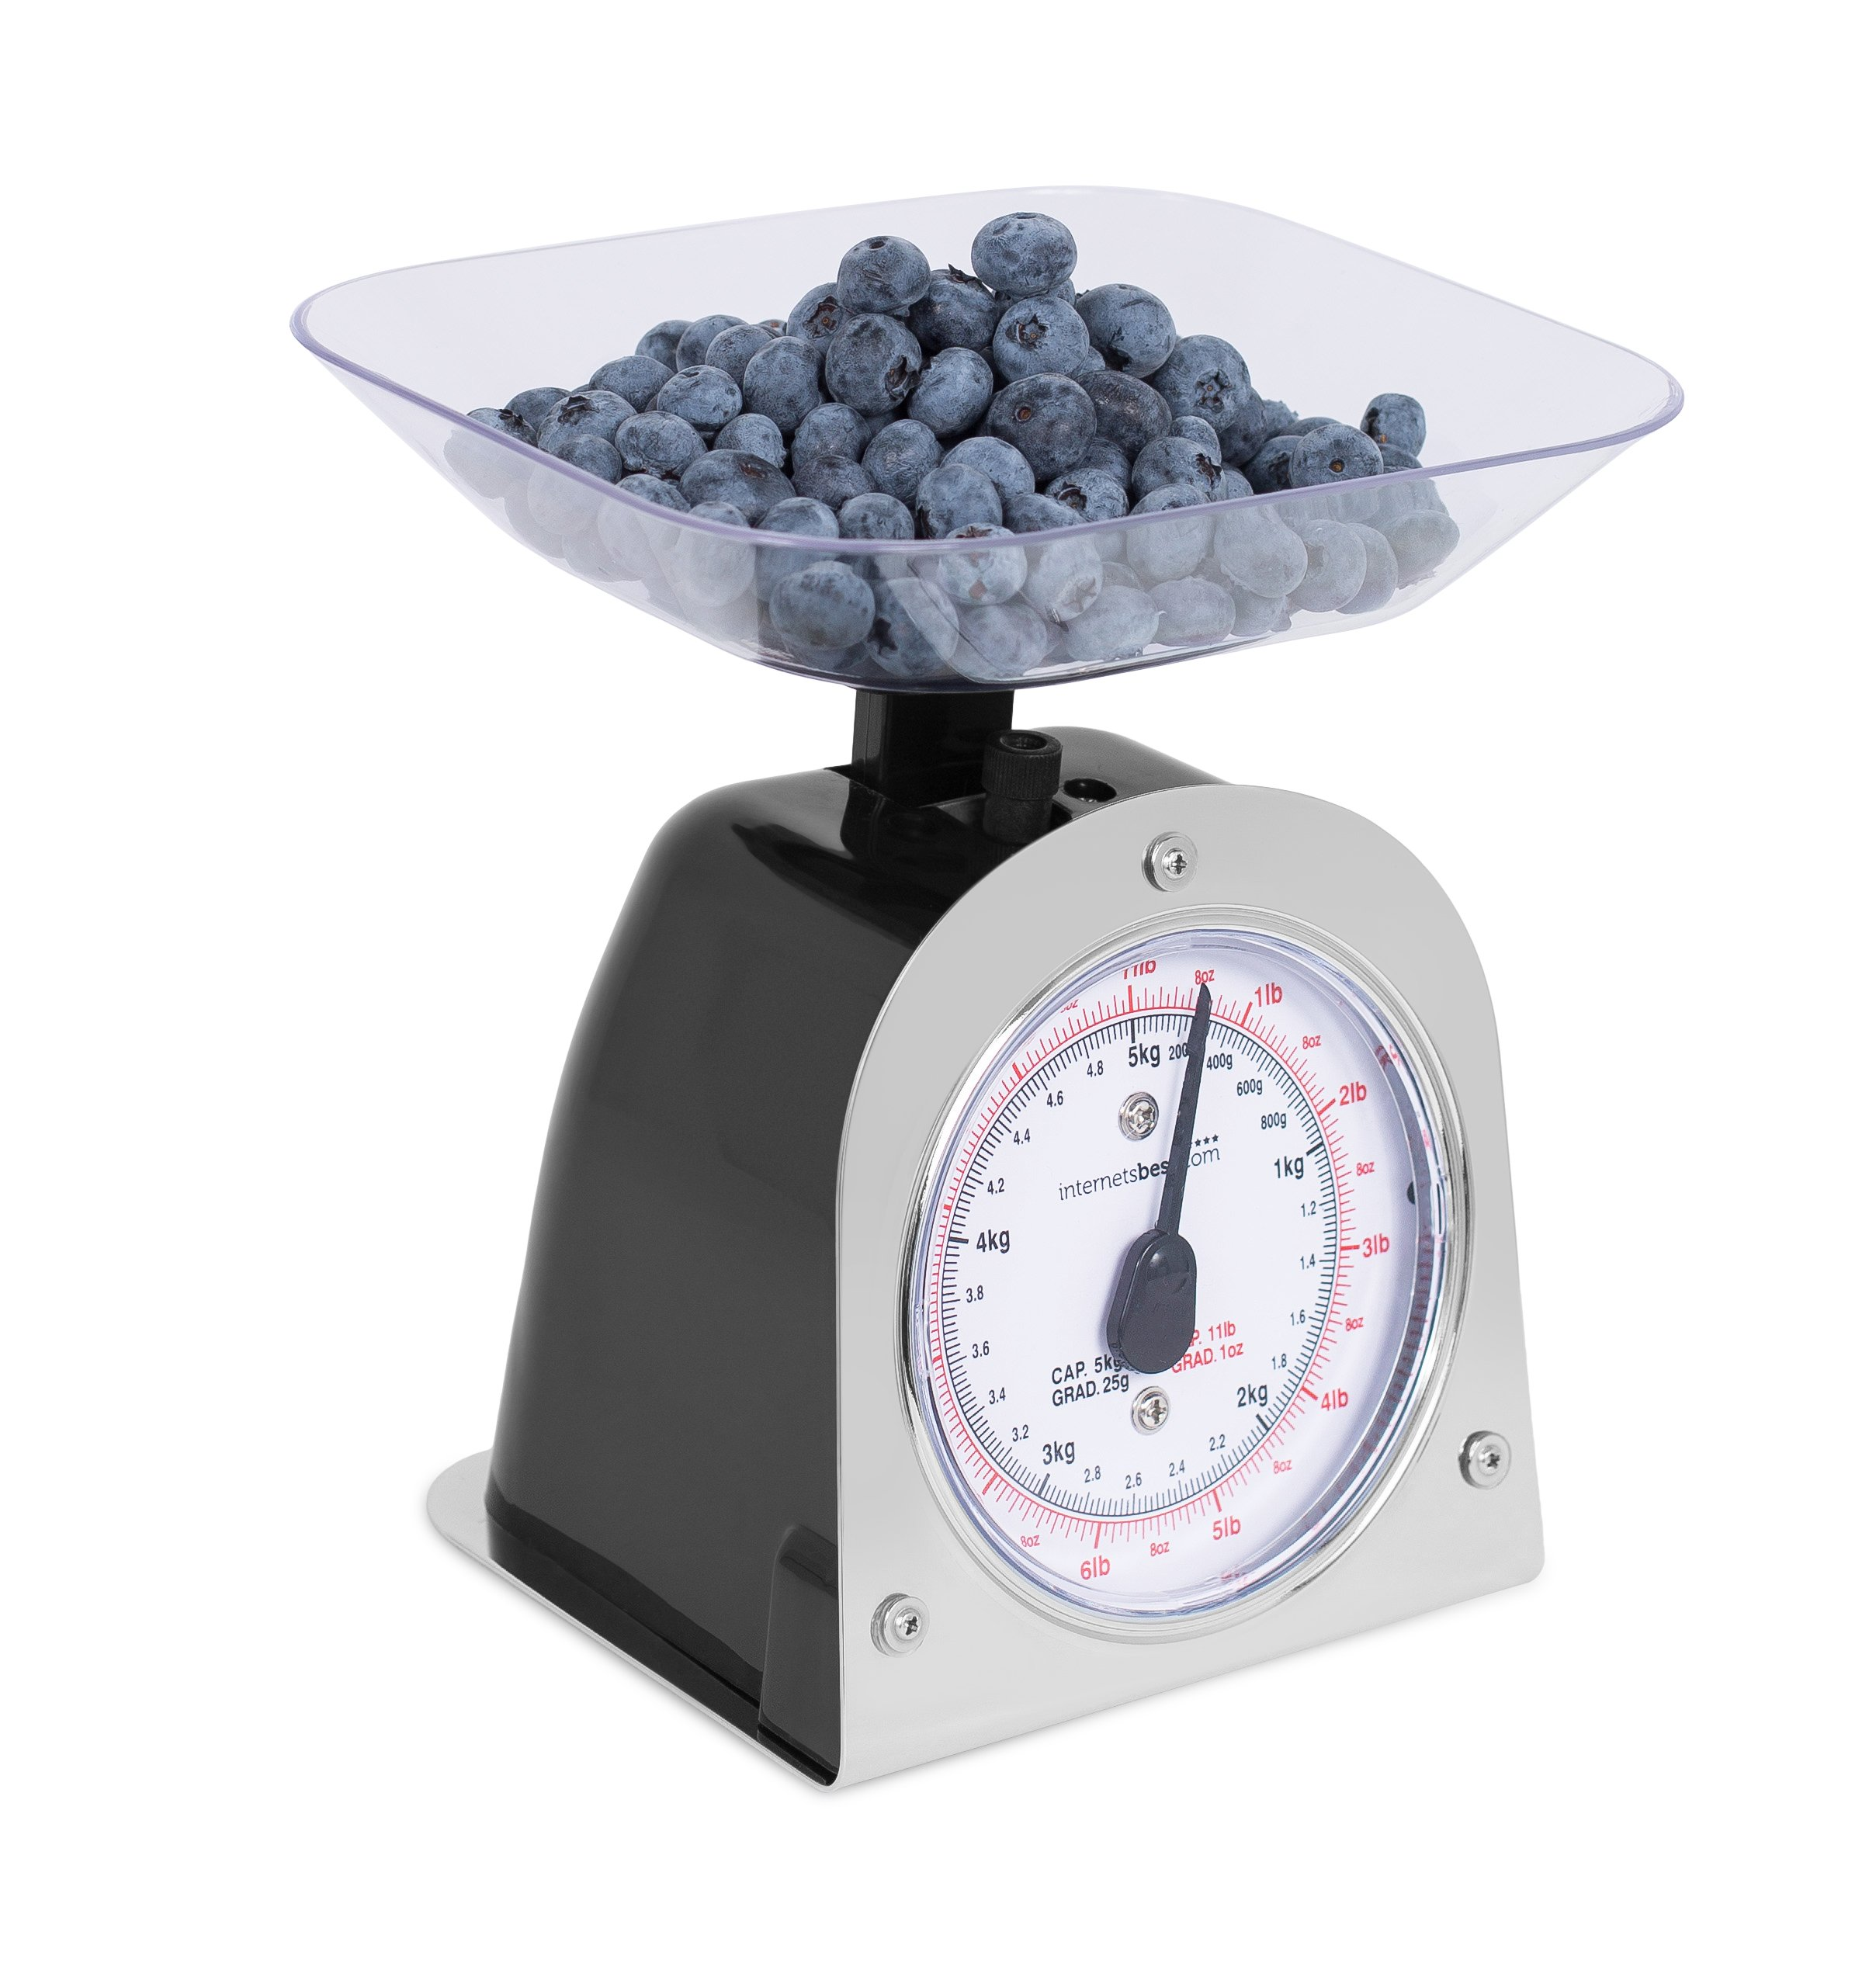 Internet's Best Mechanical Kitchen Food Weight Scale with Bowl | Accurate Measurements | Weighs Up 11 Lbs | 1KG - 5KG